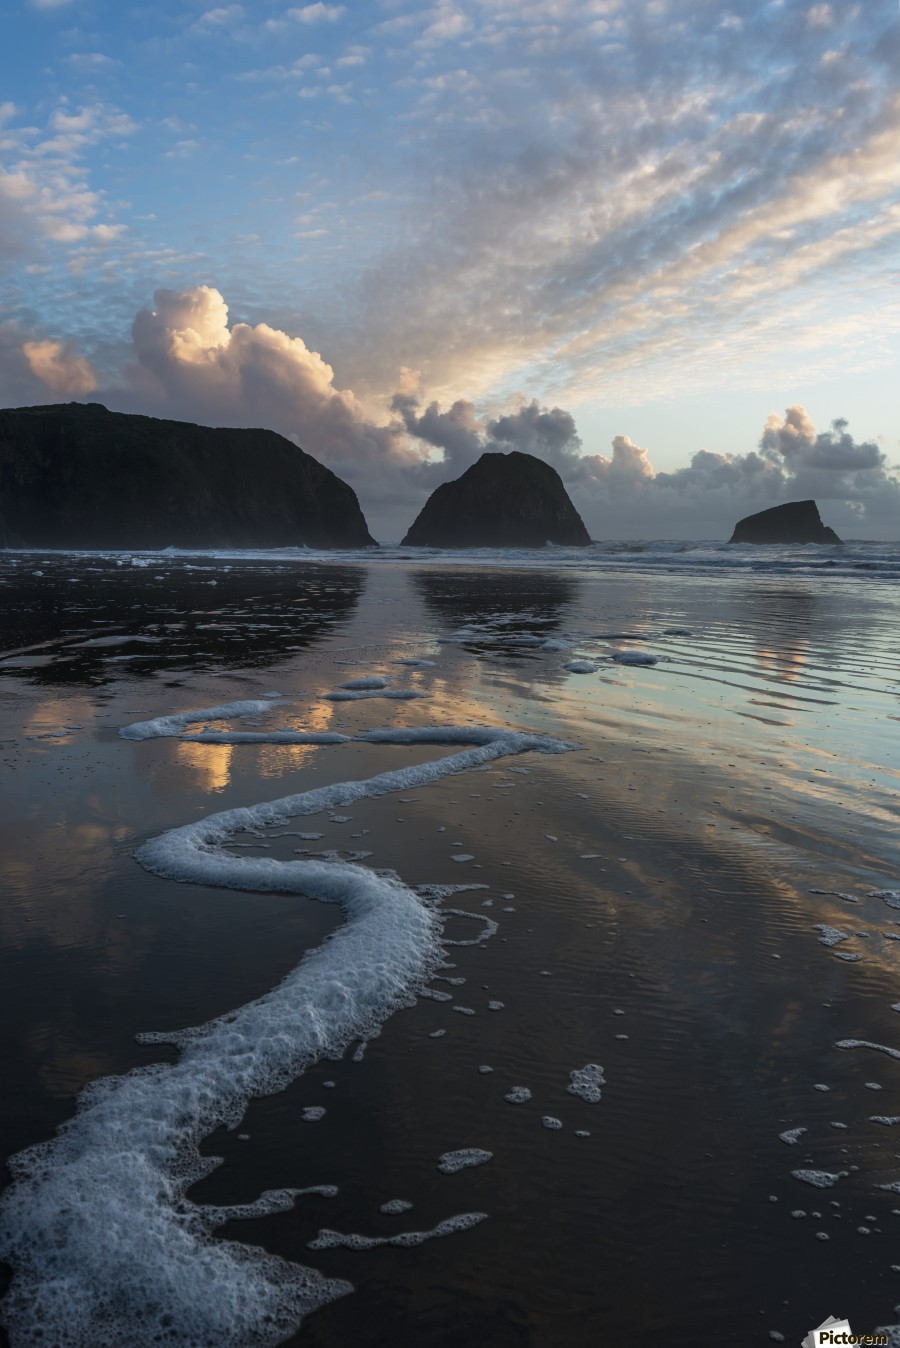 Dusk approaches on Crescent Beach; Cannon Beach, Oregon, United States of America  Imprimer